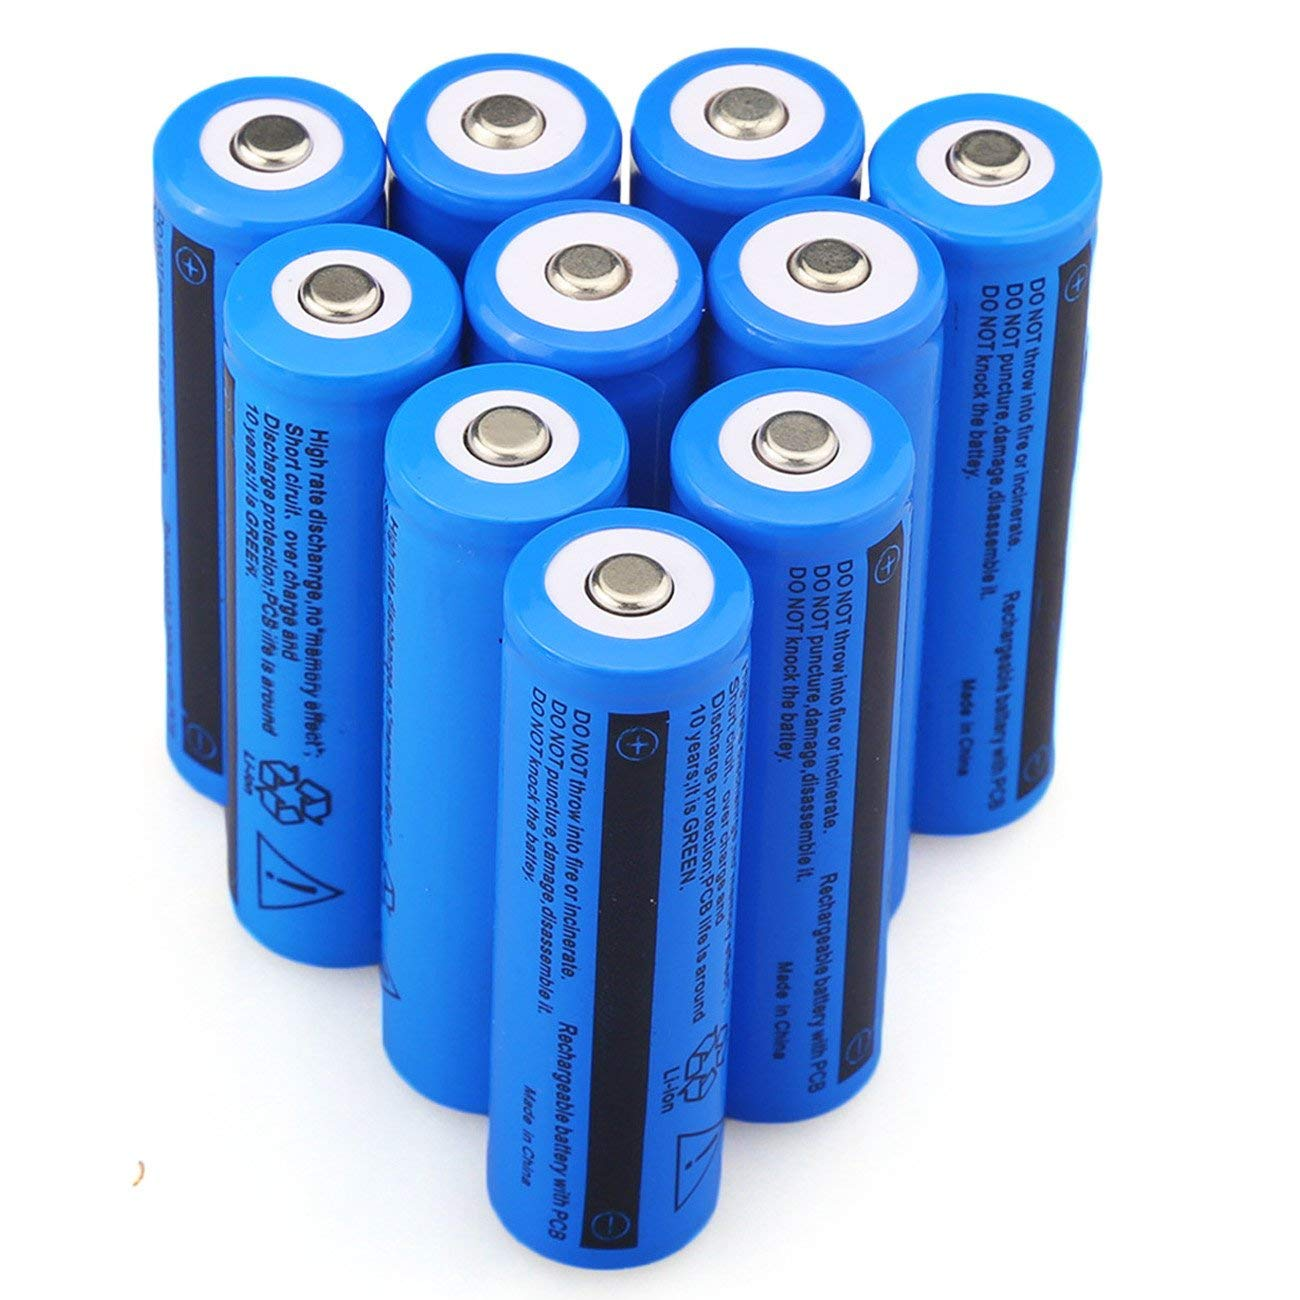 Hecloud 8pcs Rechargeable 18650 Battery With 2pc Dual How To Make A Led Flashlight Bulb 8211 For 2 15 Volt Batterie 10pcs 37v 3000mah Batteries Flashlightnot Aa Not Flat